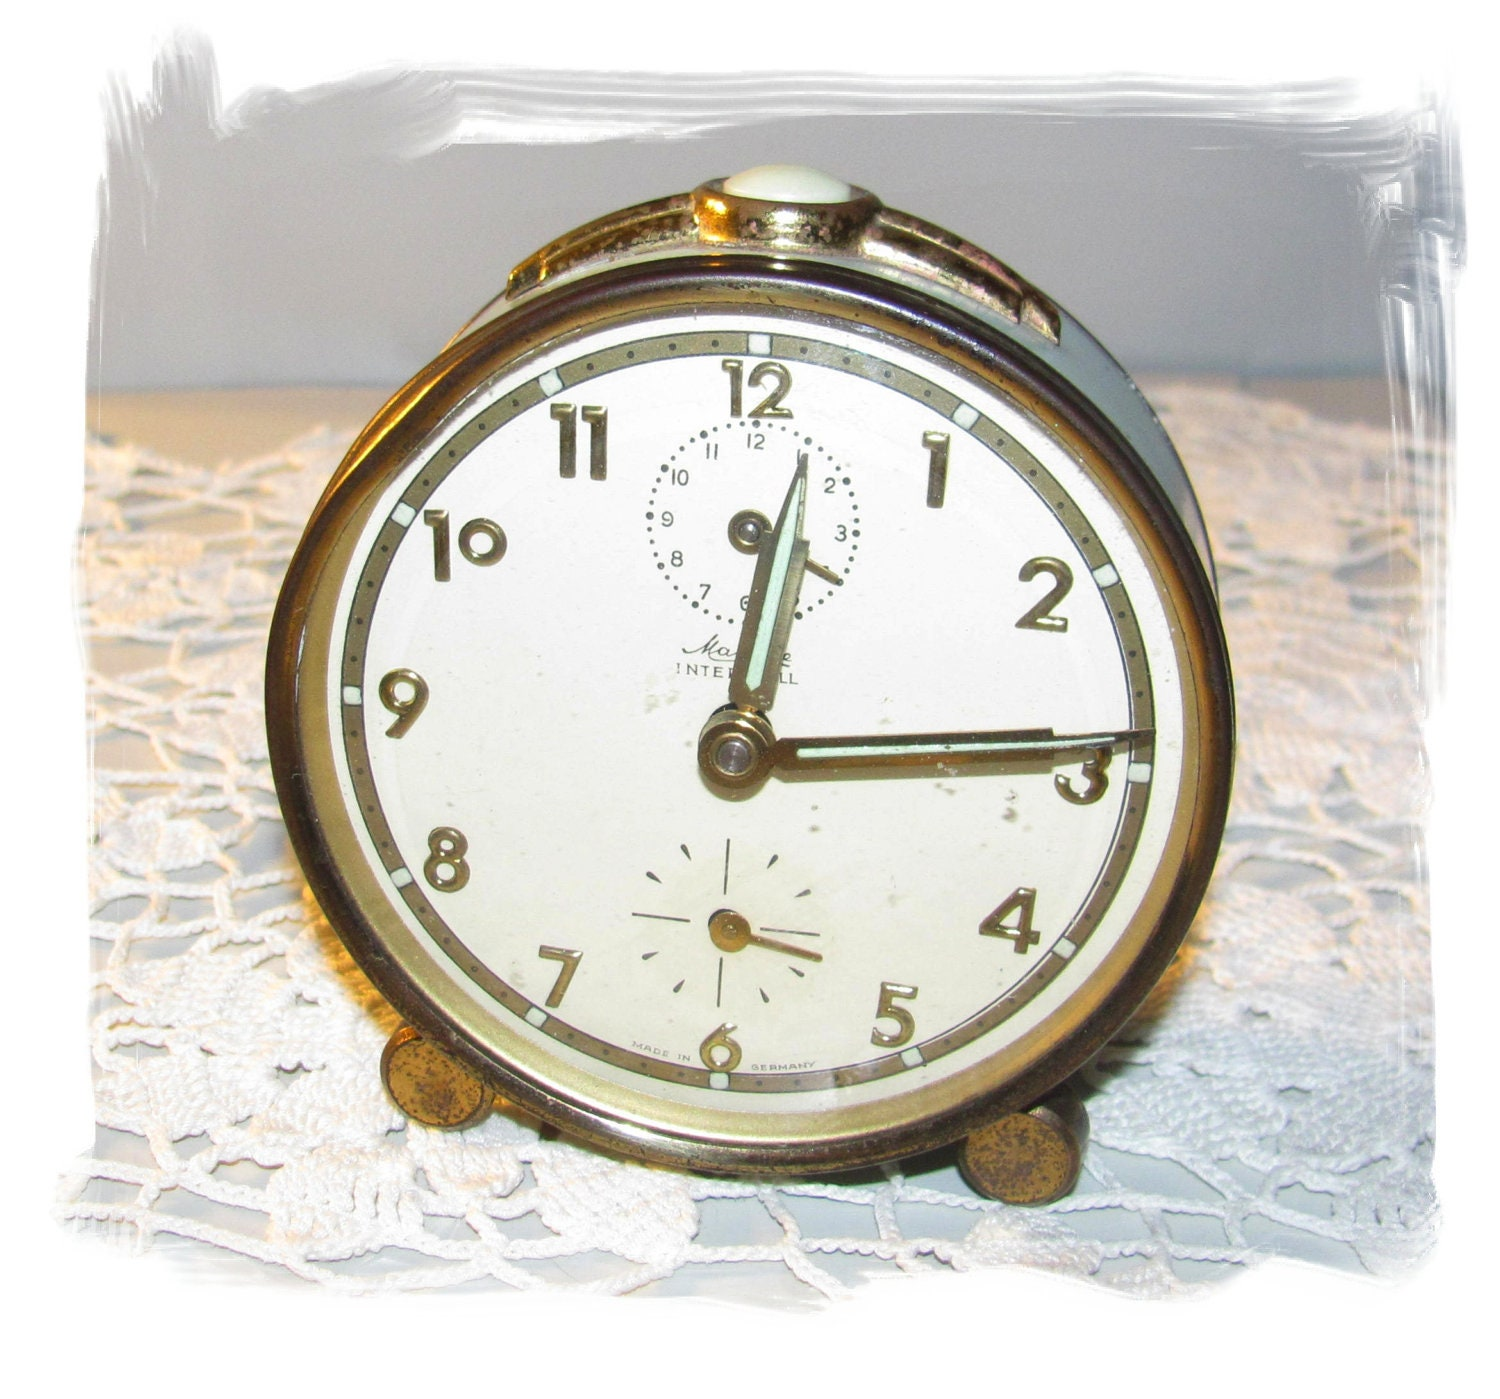 Rare vintage mauthe art deco alarm clock by joyfulmoondesigns Art deco alarm clocks